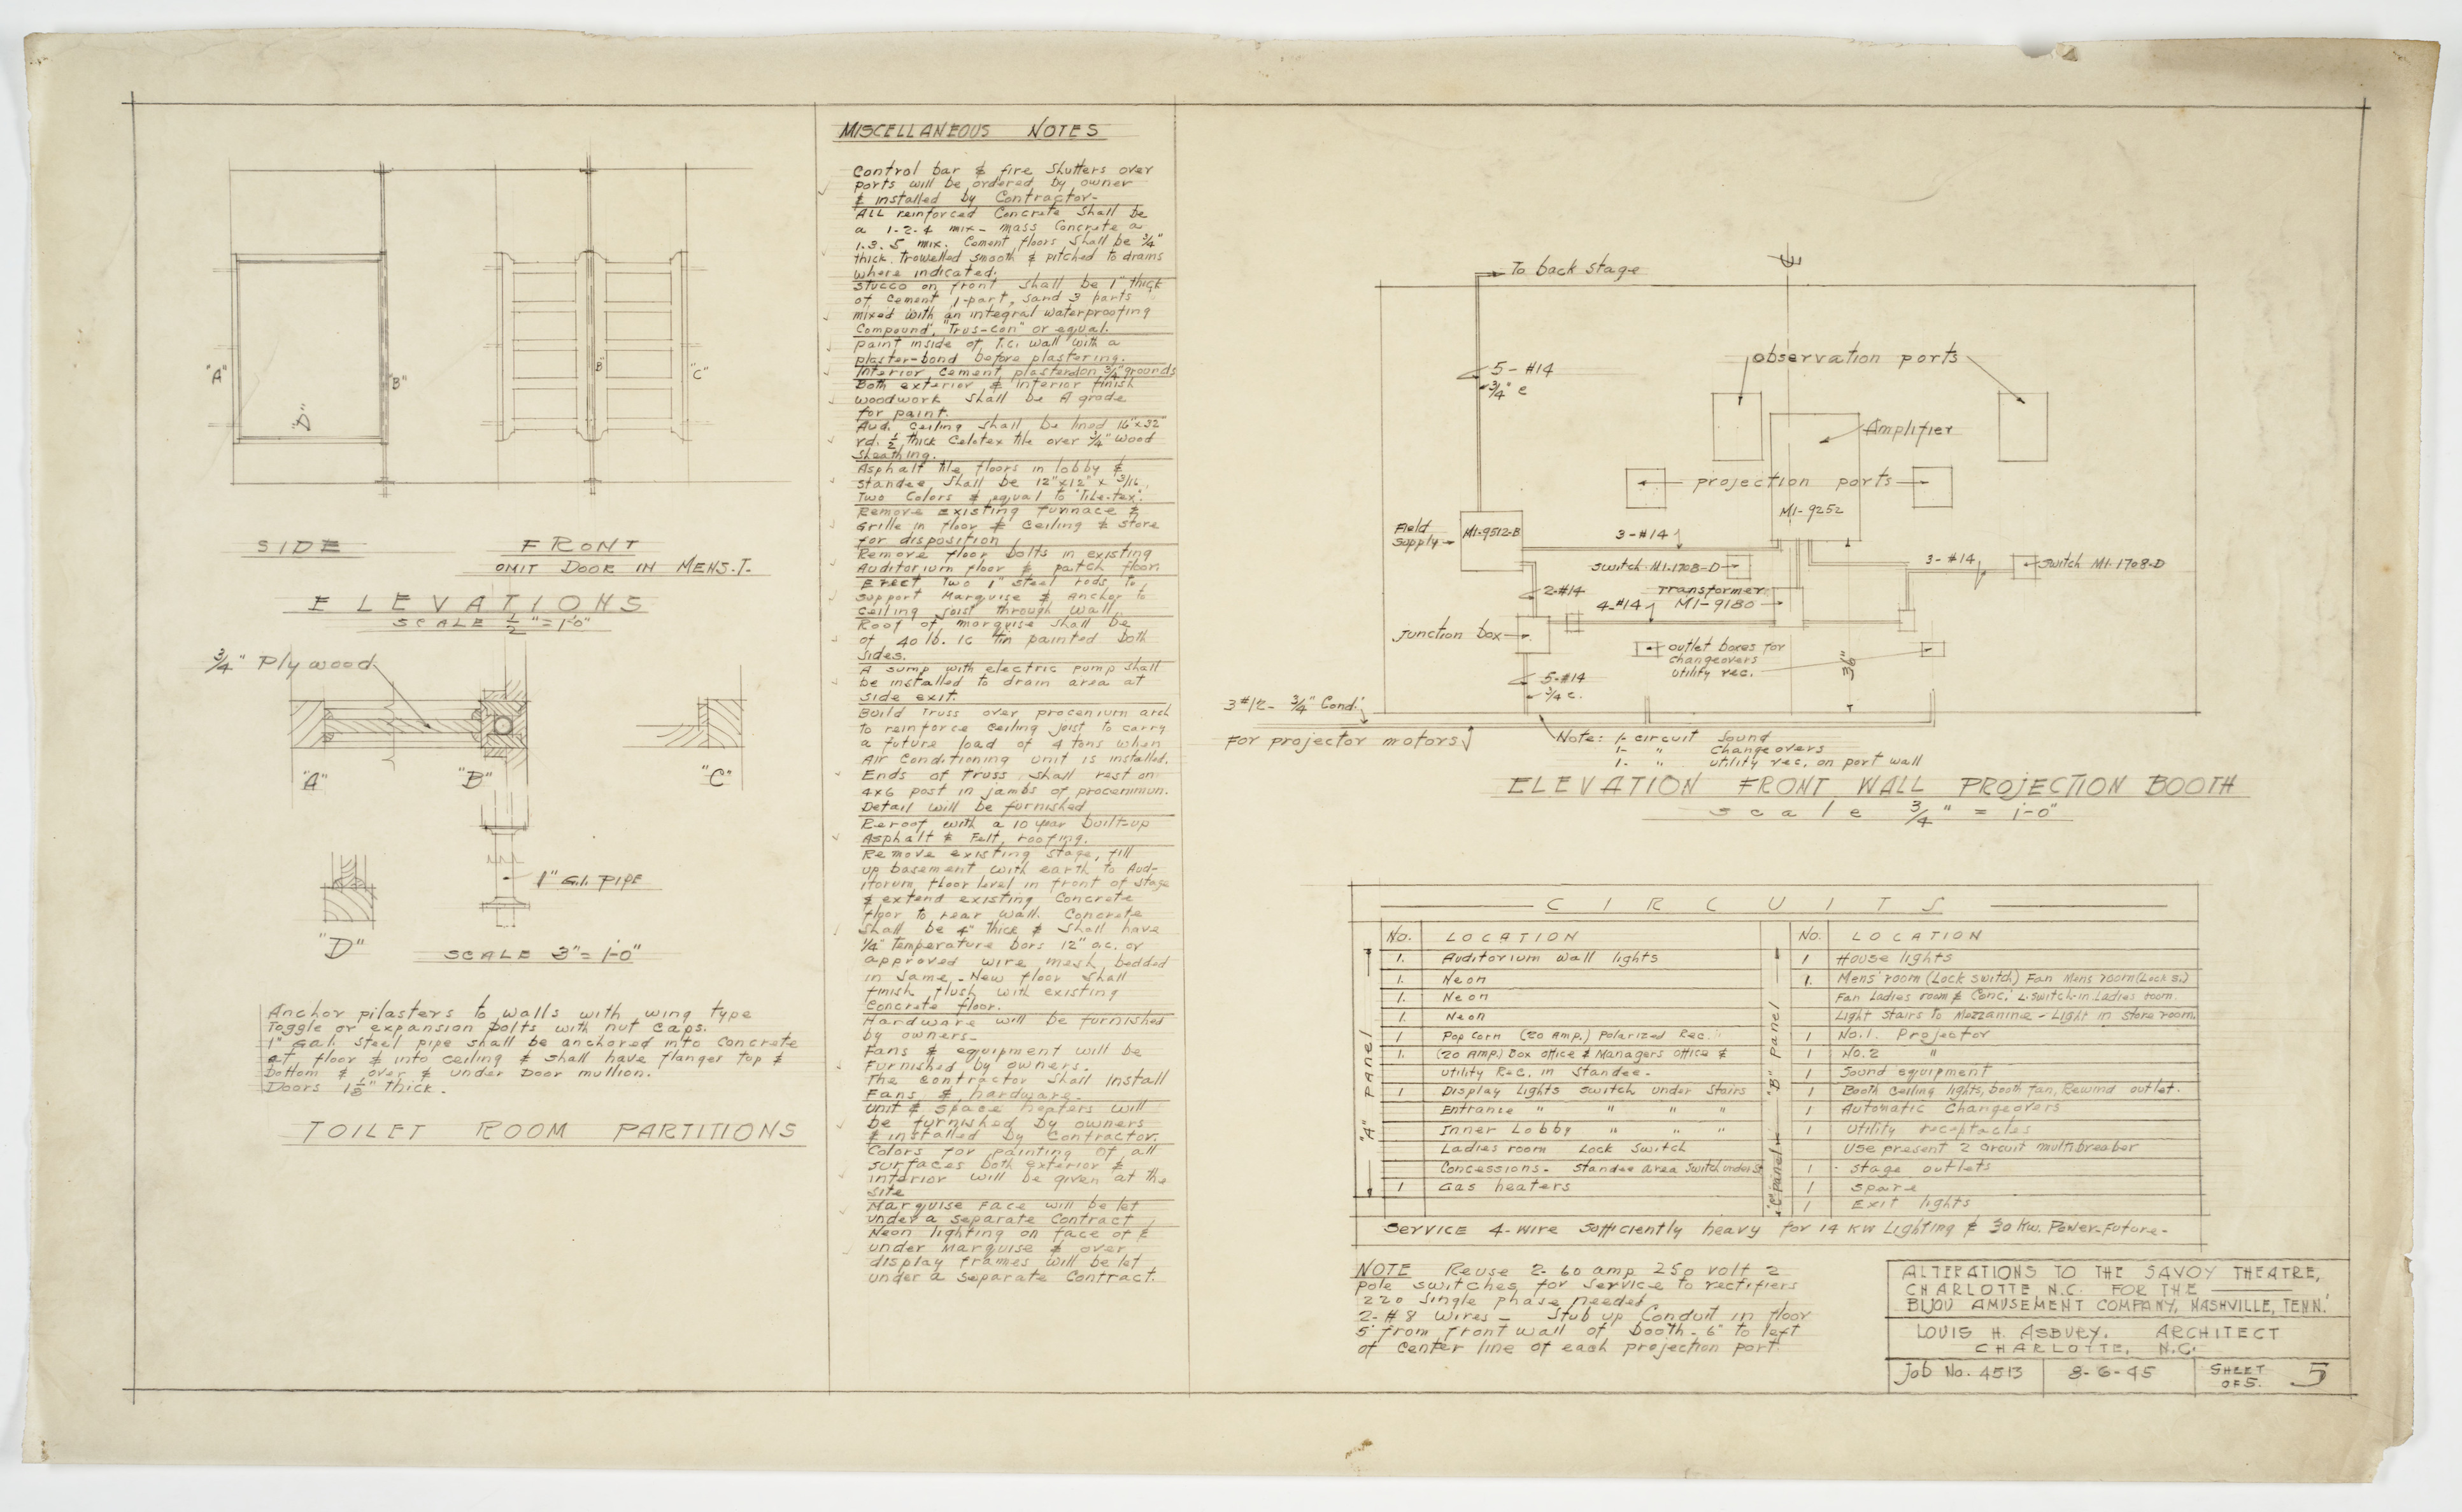 Elevation Plan Notes : Toilet details notes and projection booth elevations